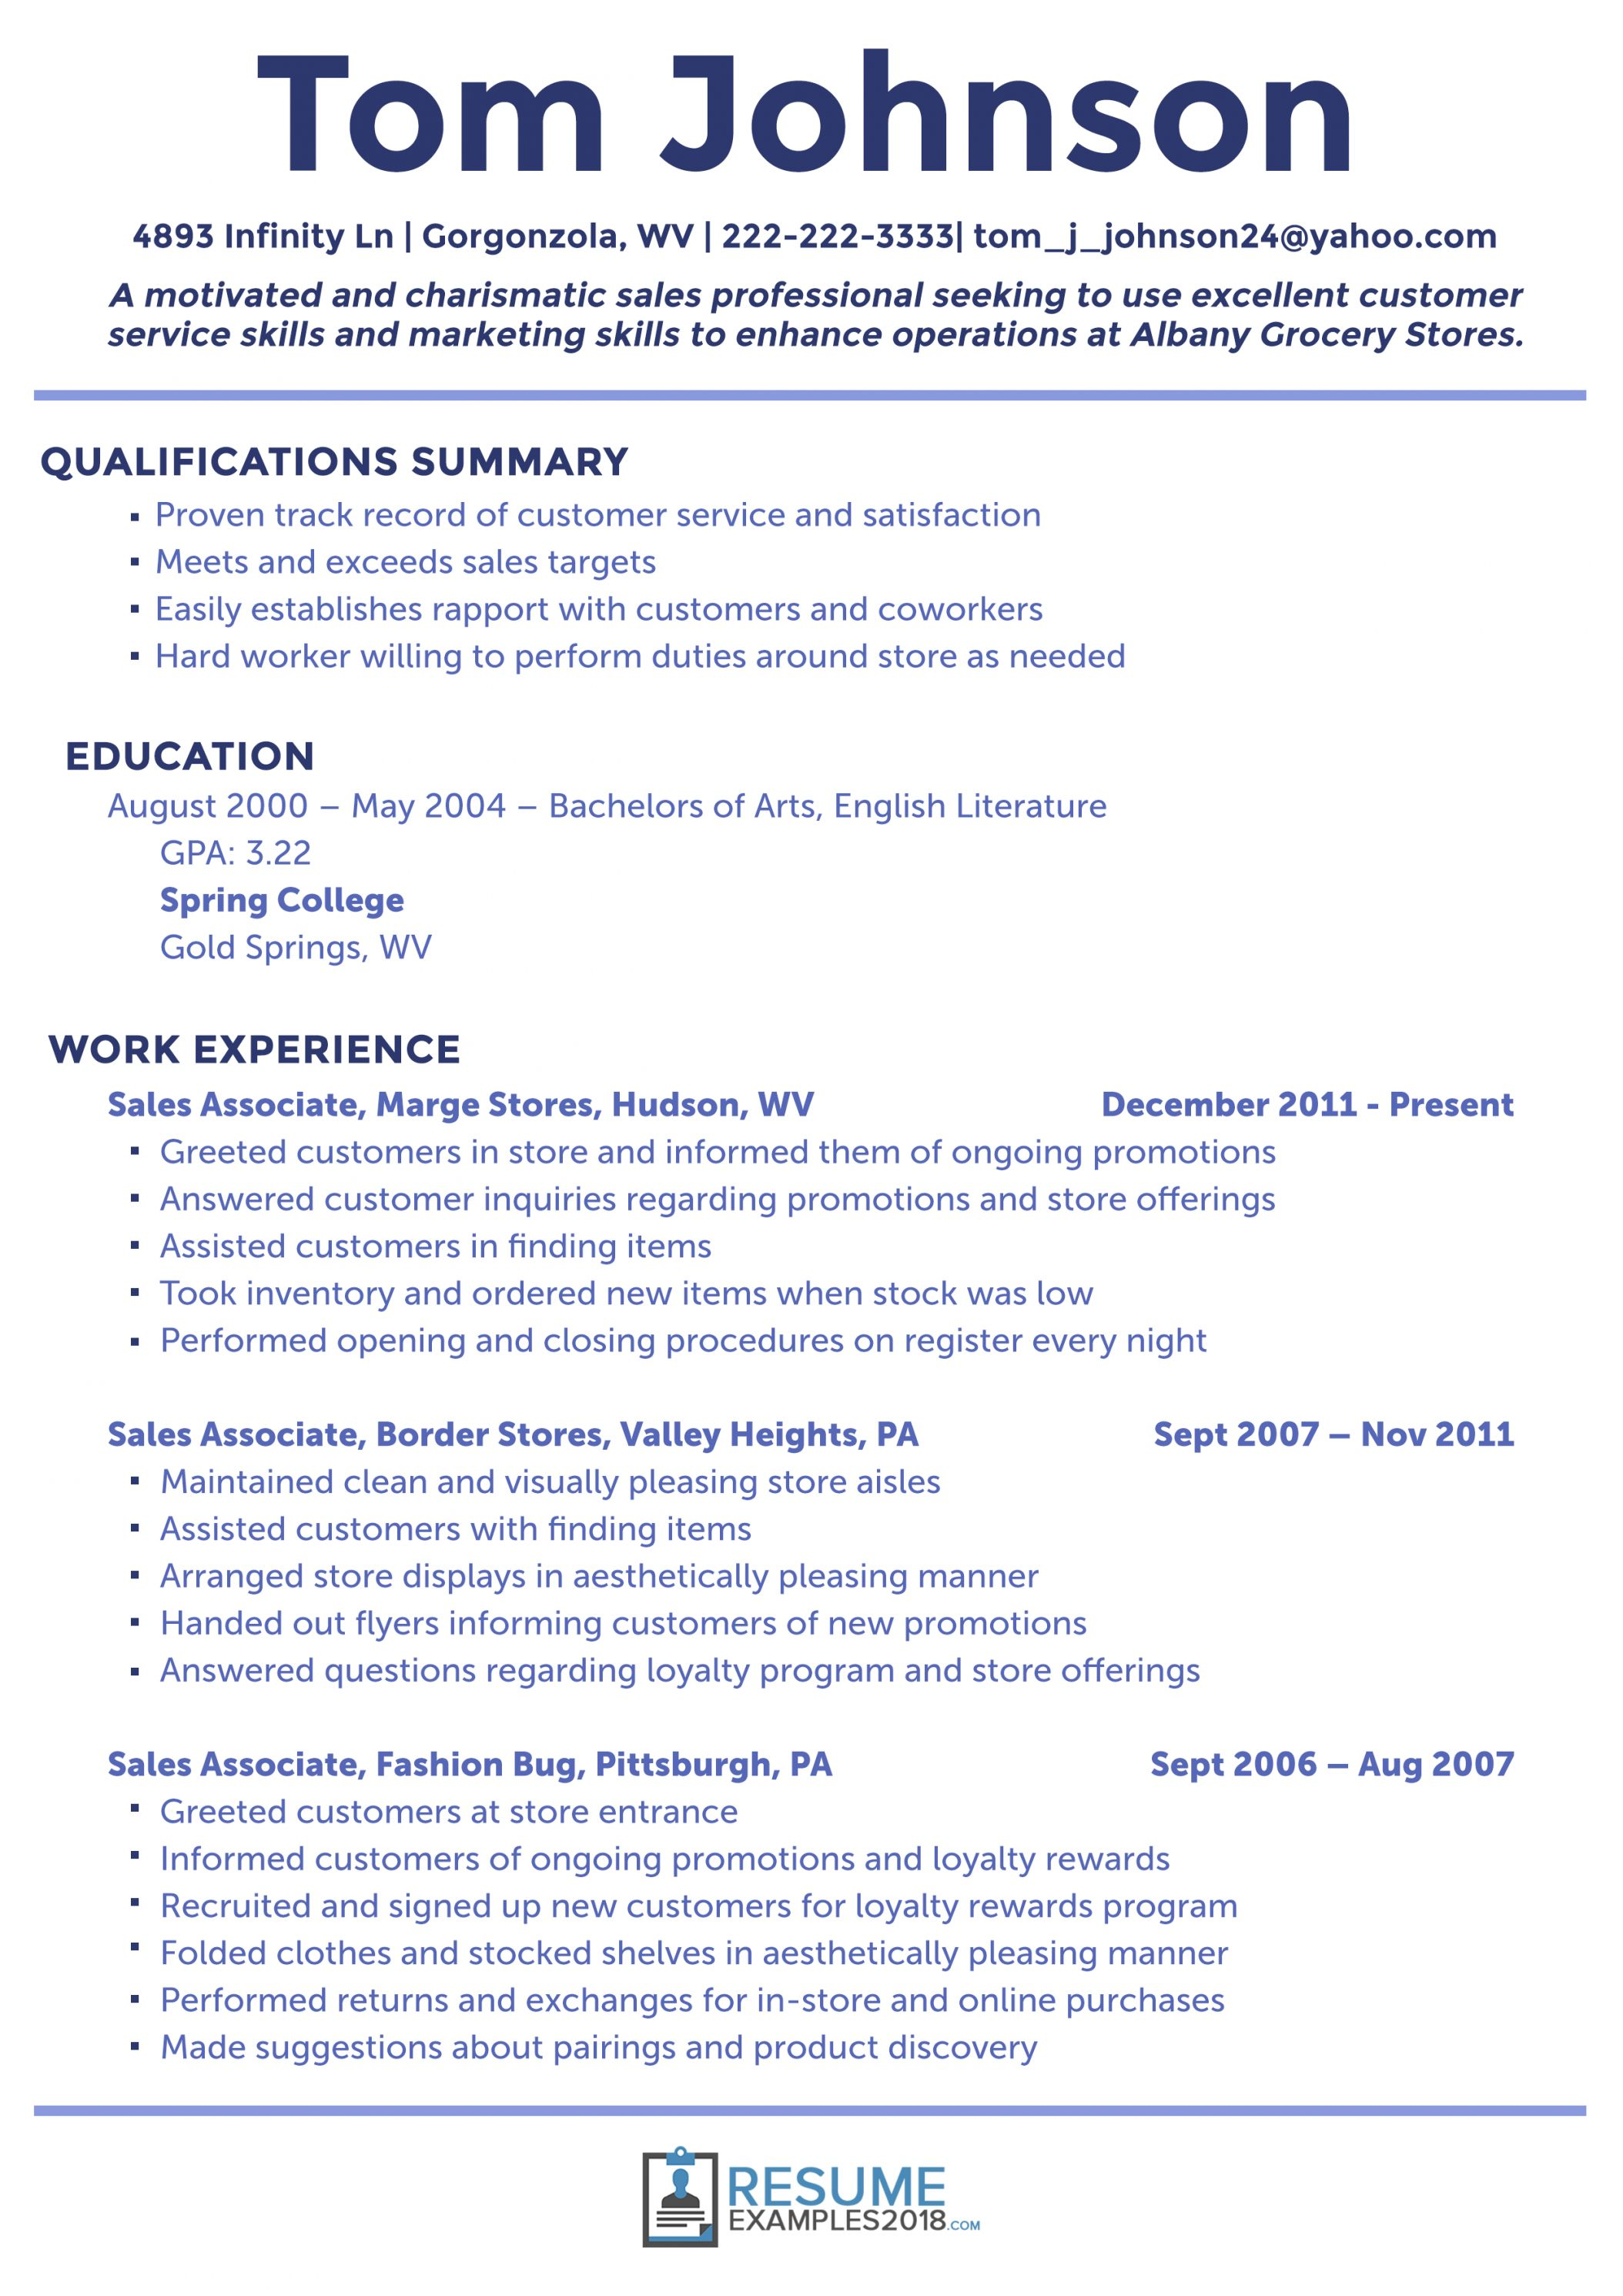 Template 2018 Sales resume examples, Good resume